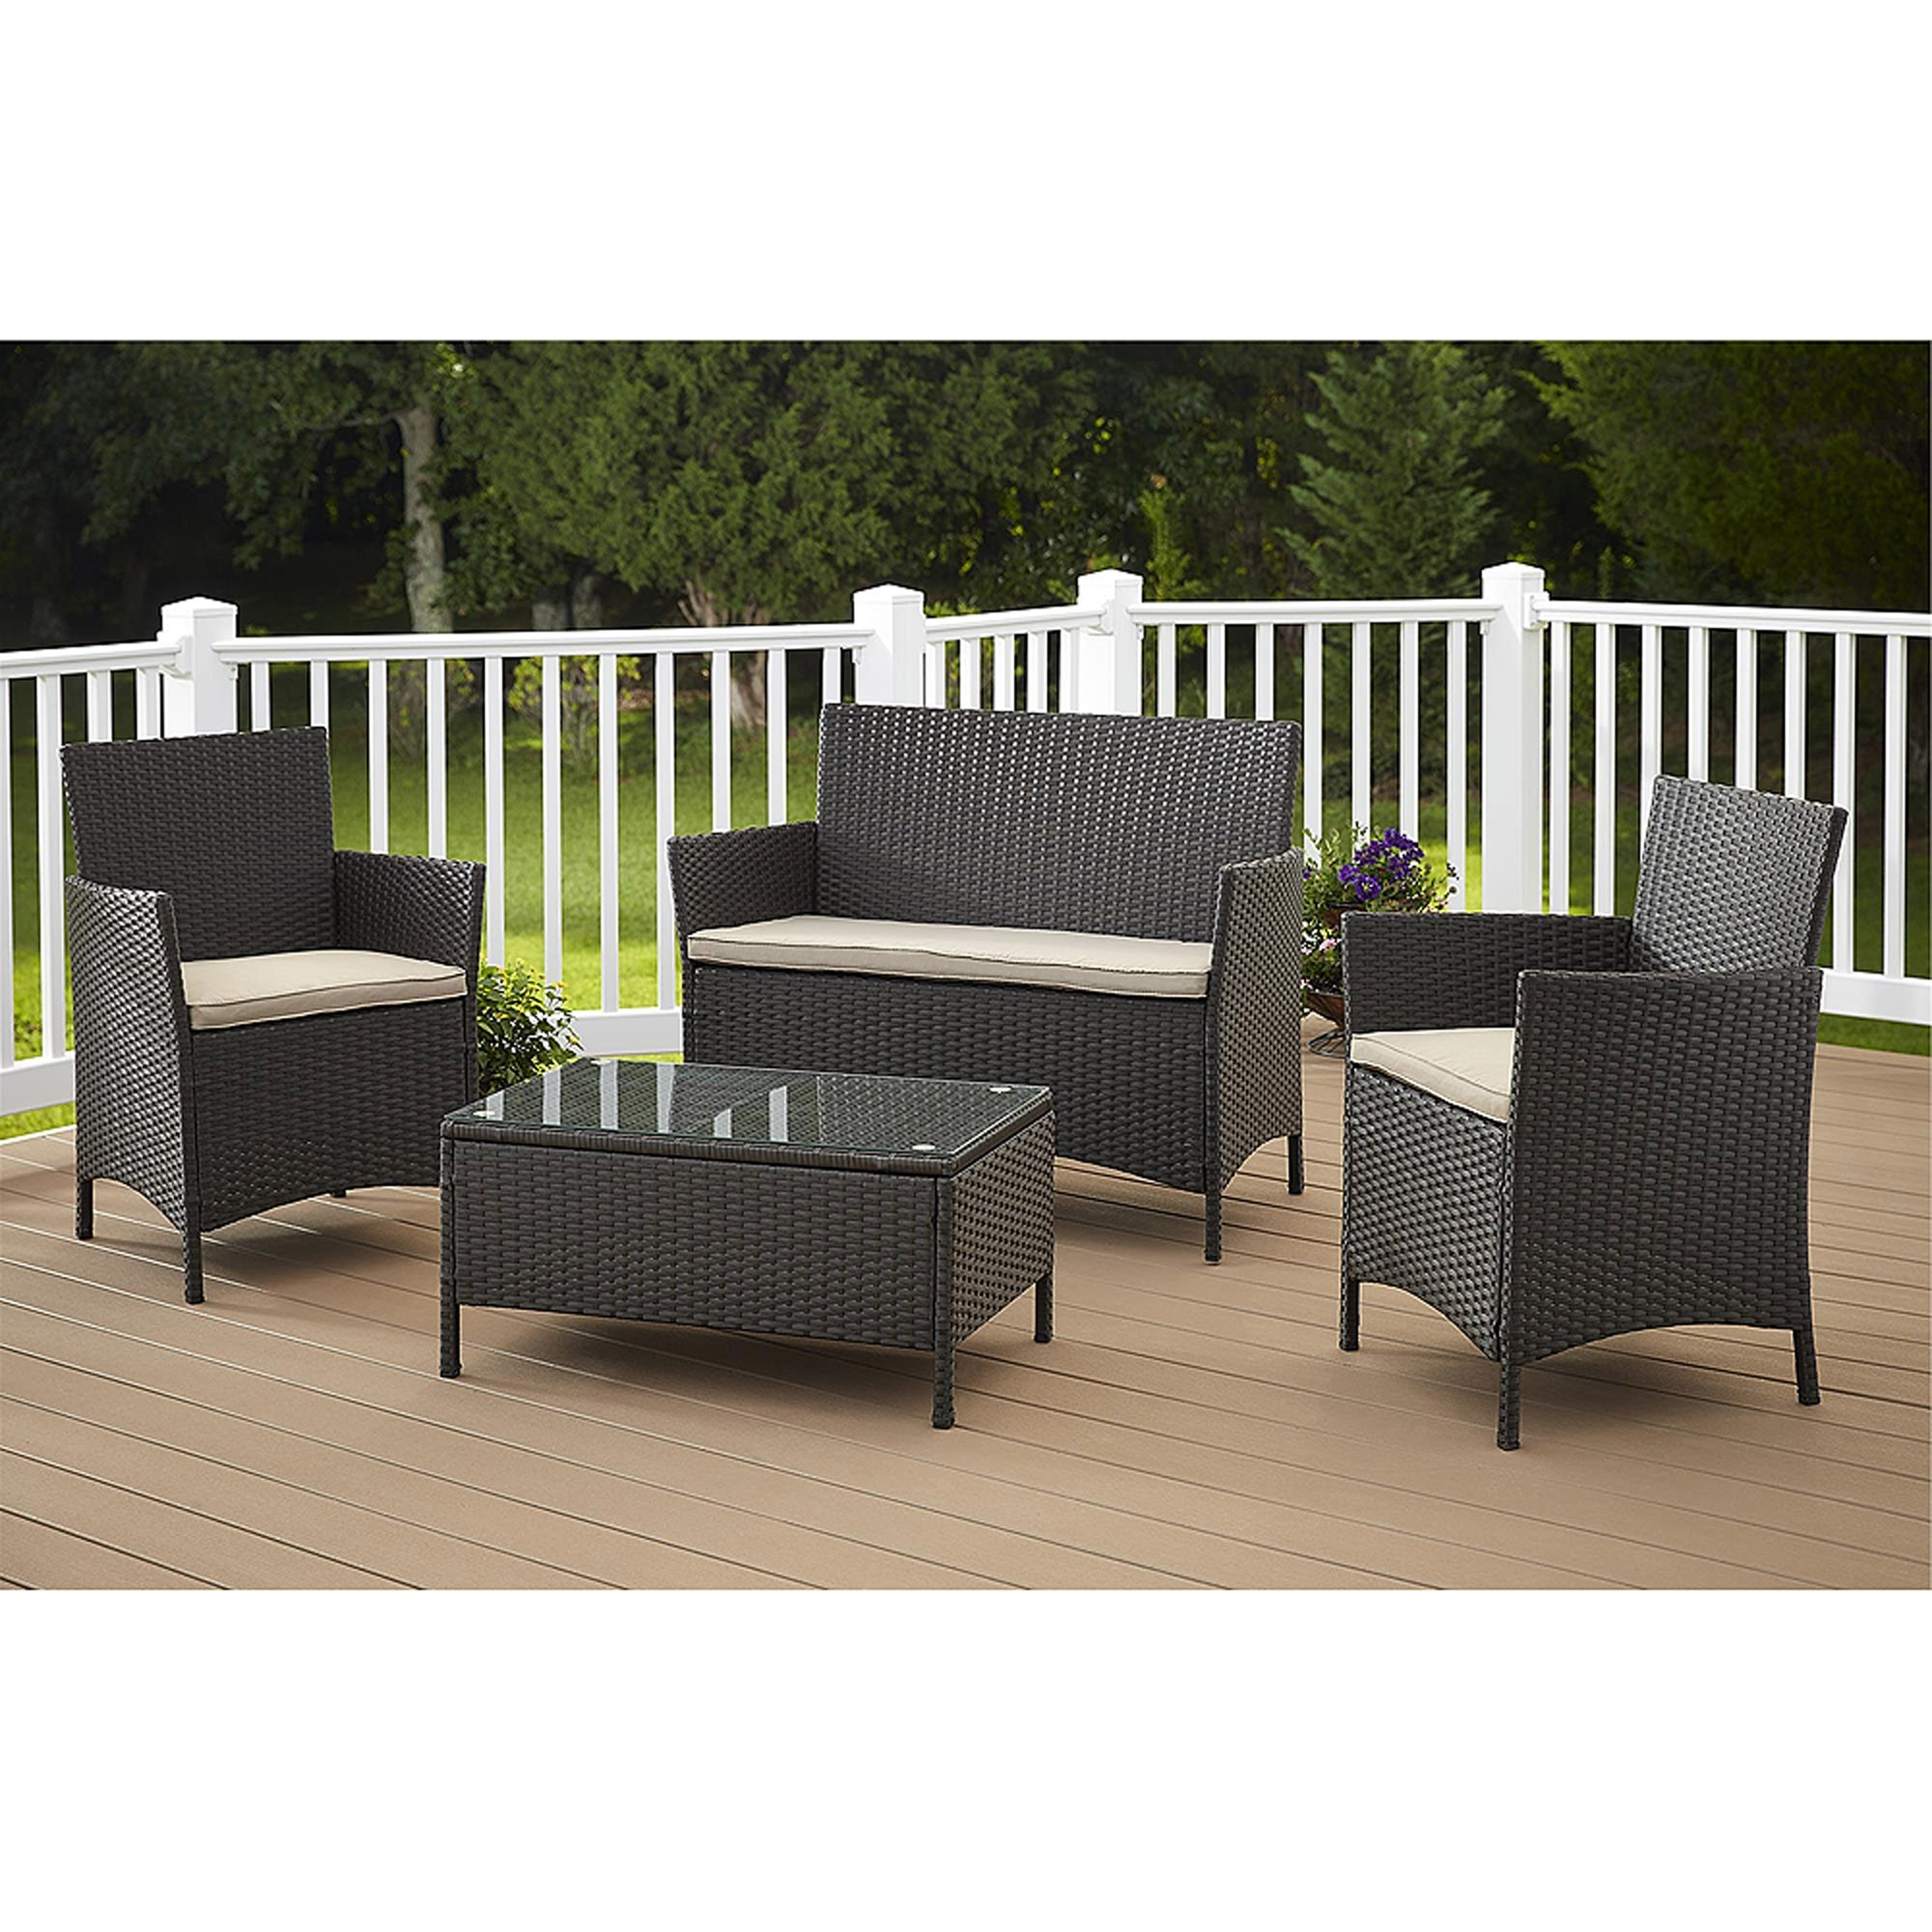 Cosco Outdoor Furniture Jamaica 4 Piece Resin Wicker Patio Furniture Intended For Most Current Wicker 4pc Patio Conversation Sets With Navy Cushions (View 10 of 20)